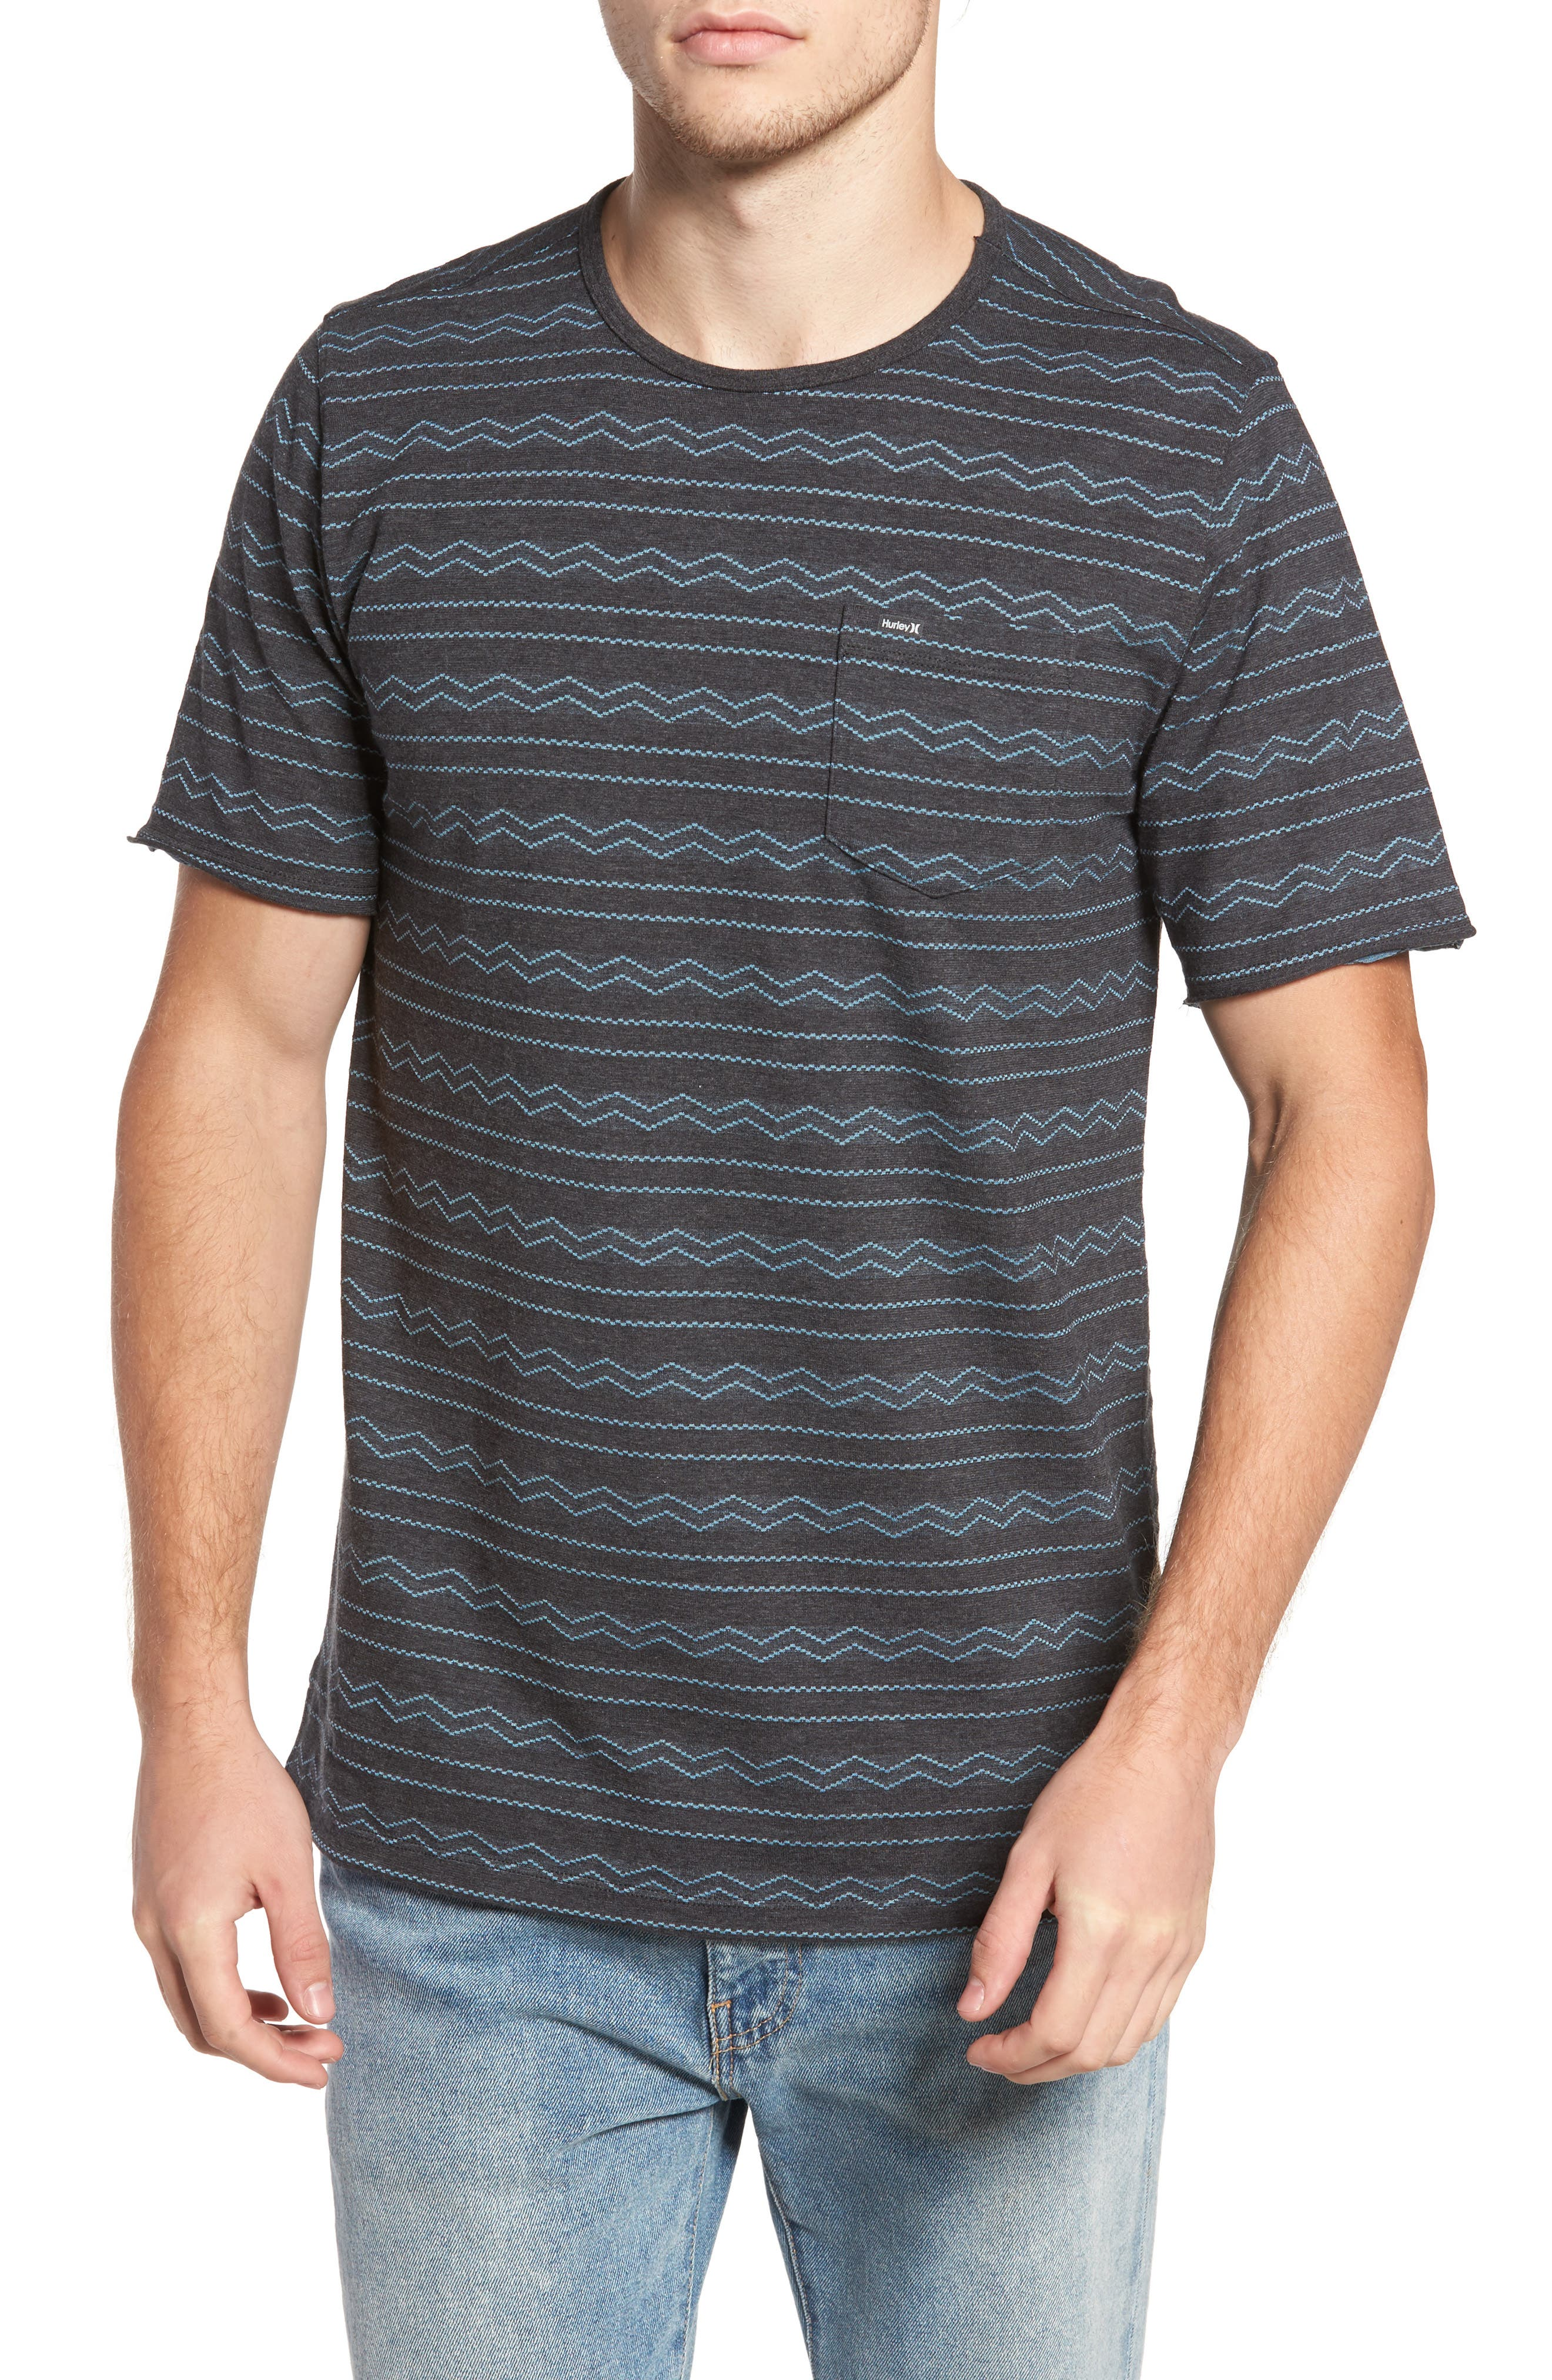 Pismo Dri-FIT T-Shirt,                             Main thumbnail 1, color,                             Black Heather